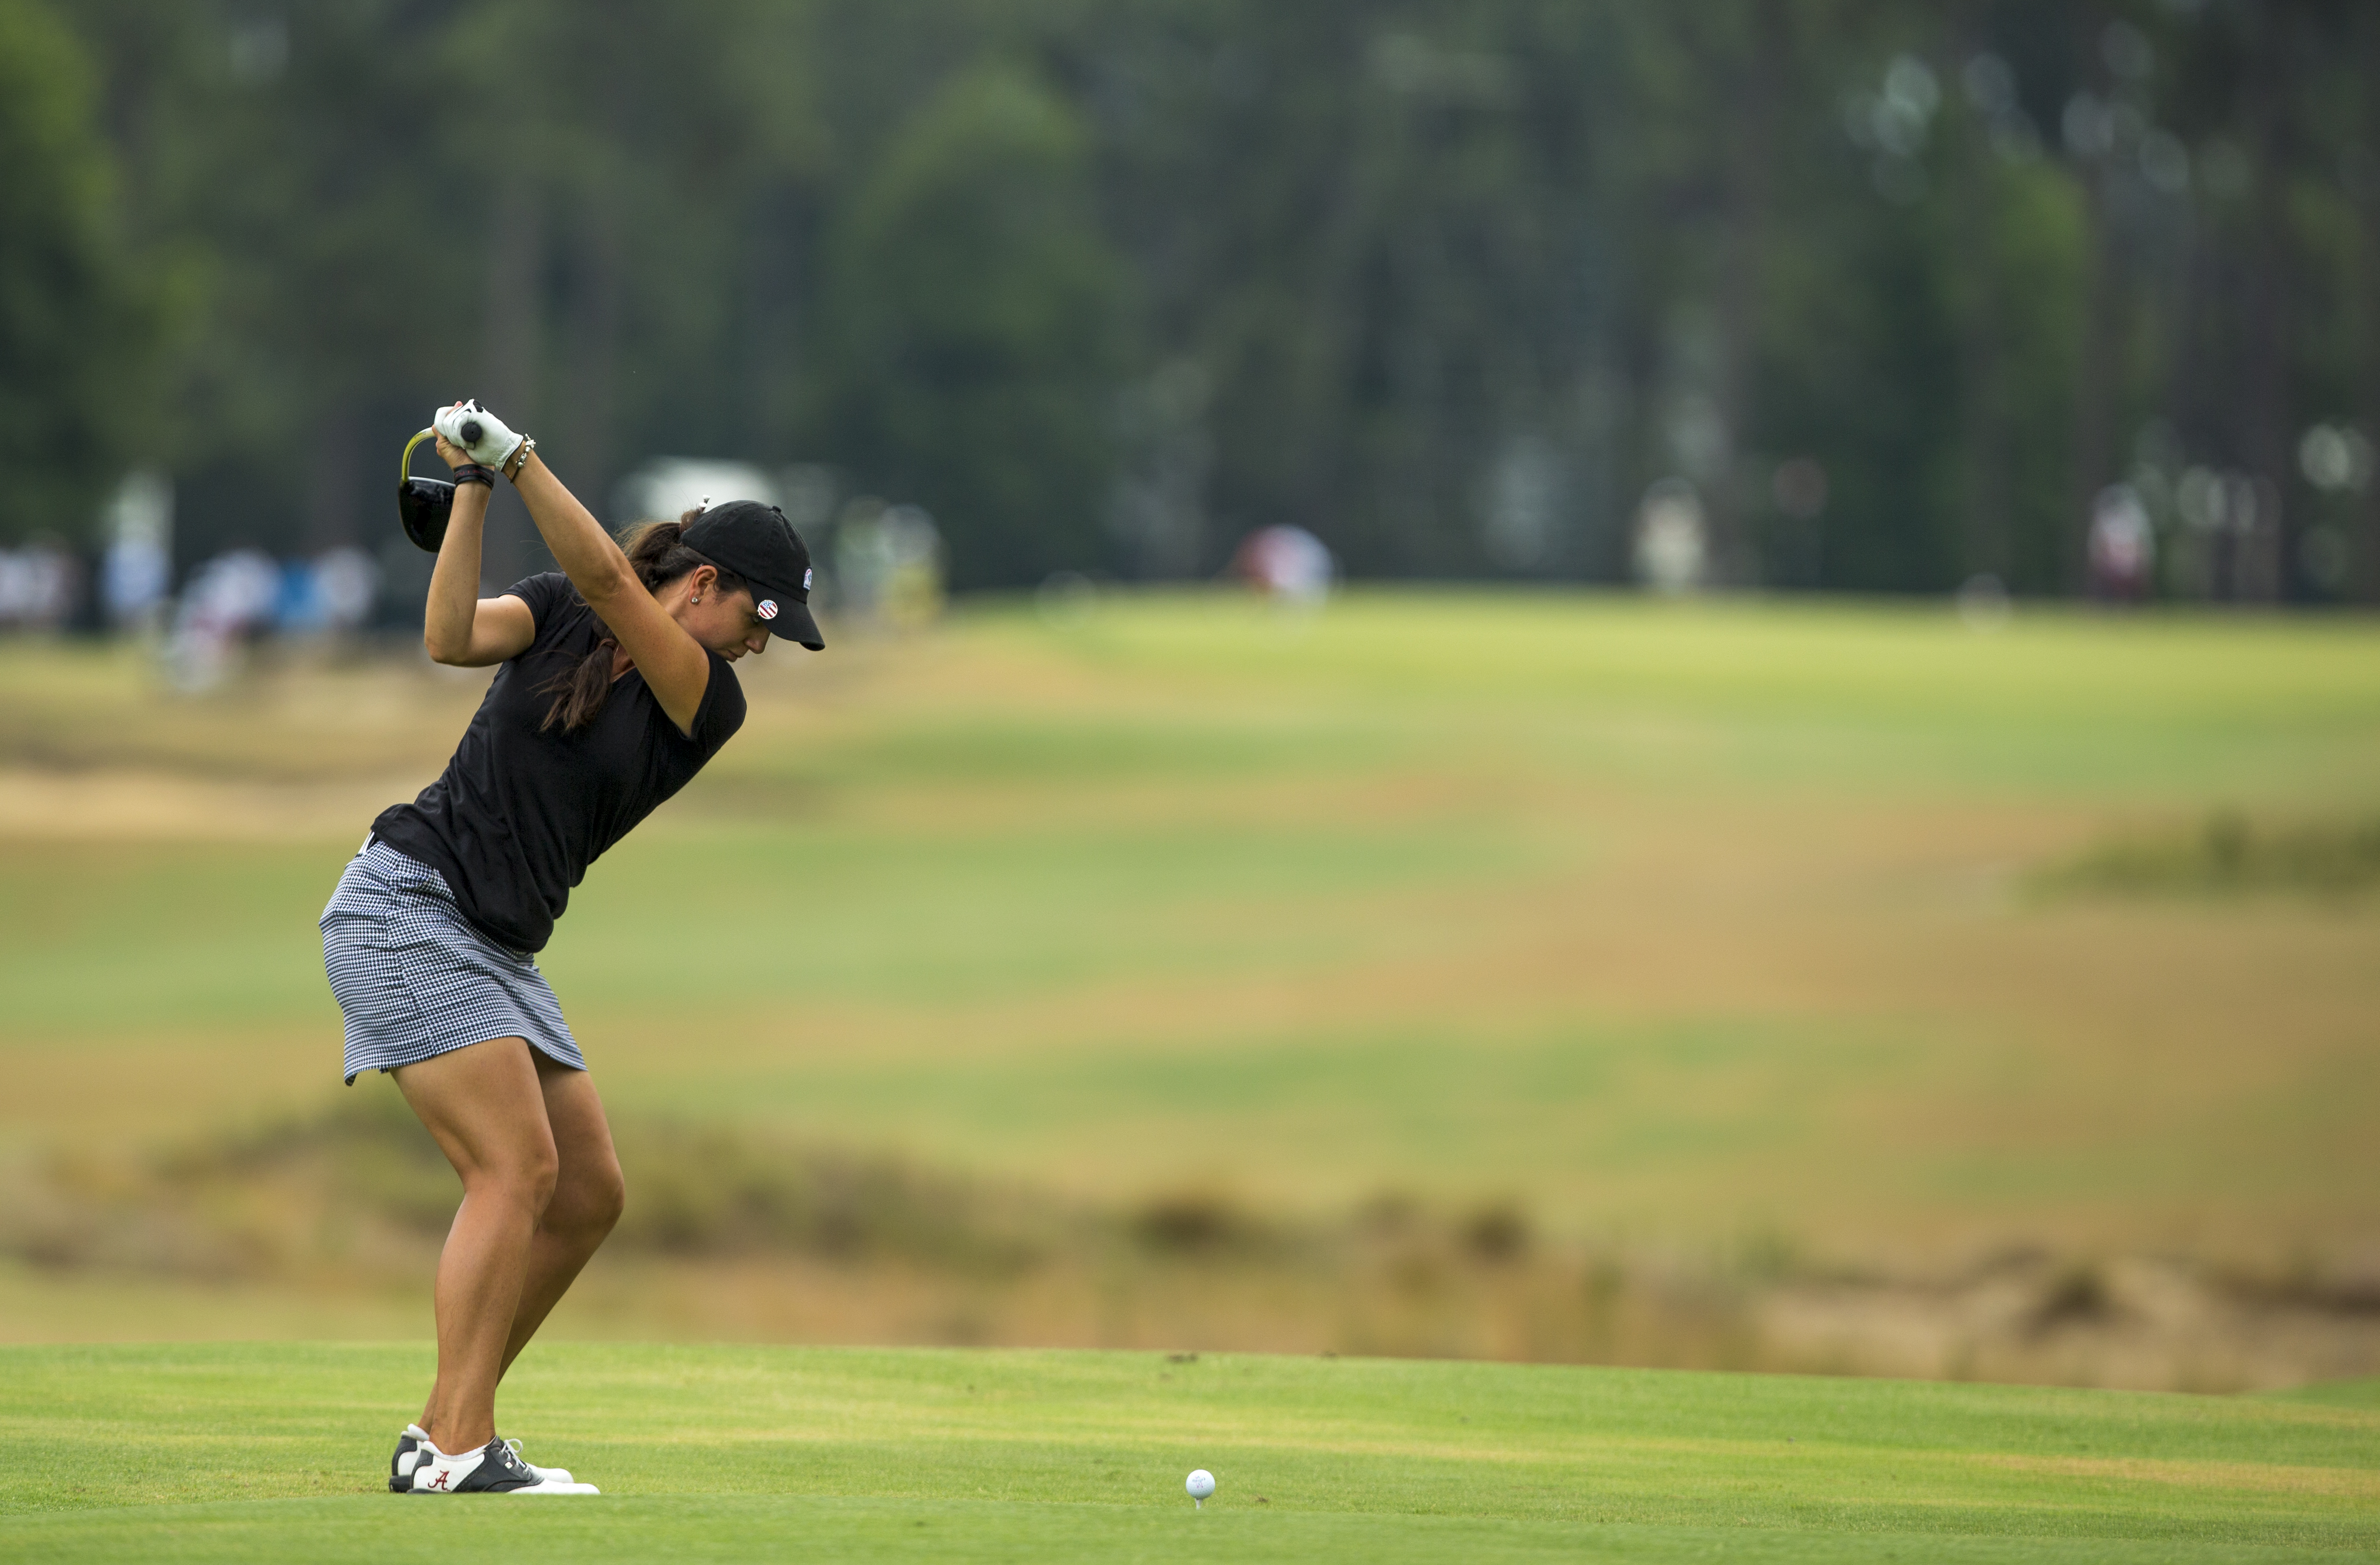 Emma Talley during the 2014 U.S. Women's Open at Pinehurst.